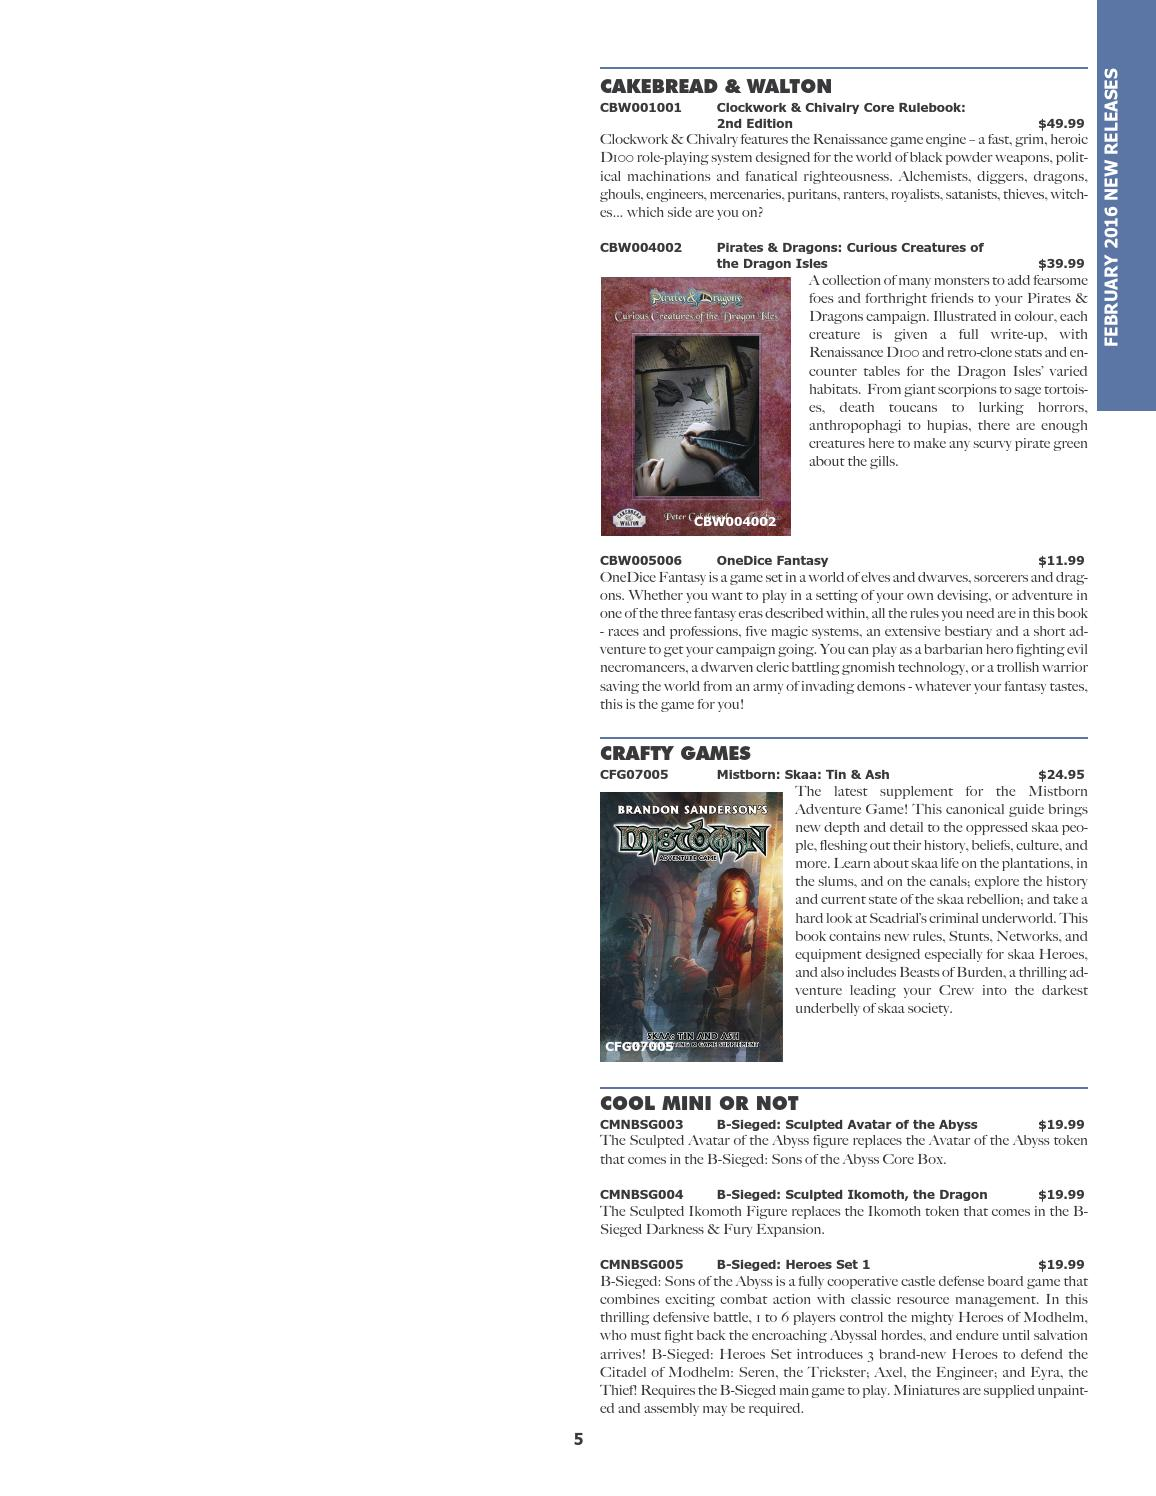 Meeple Monthly Magazine - December Issue by ACD Distribution